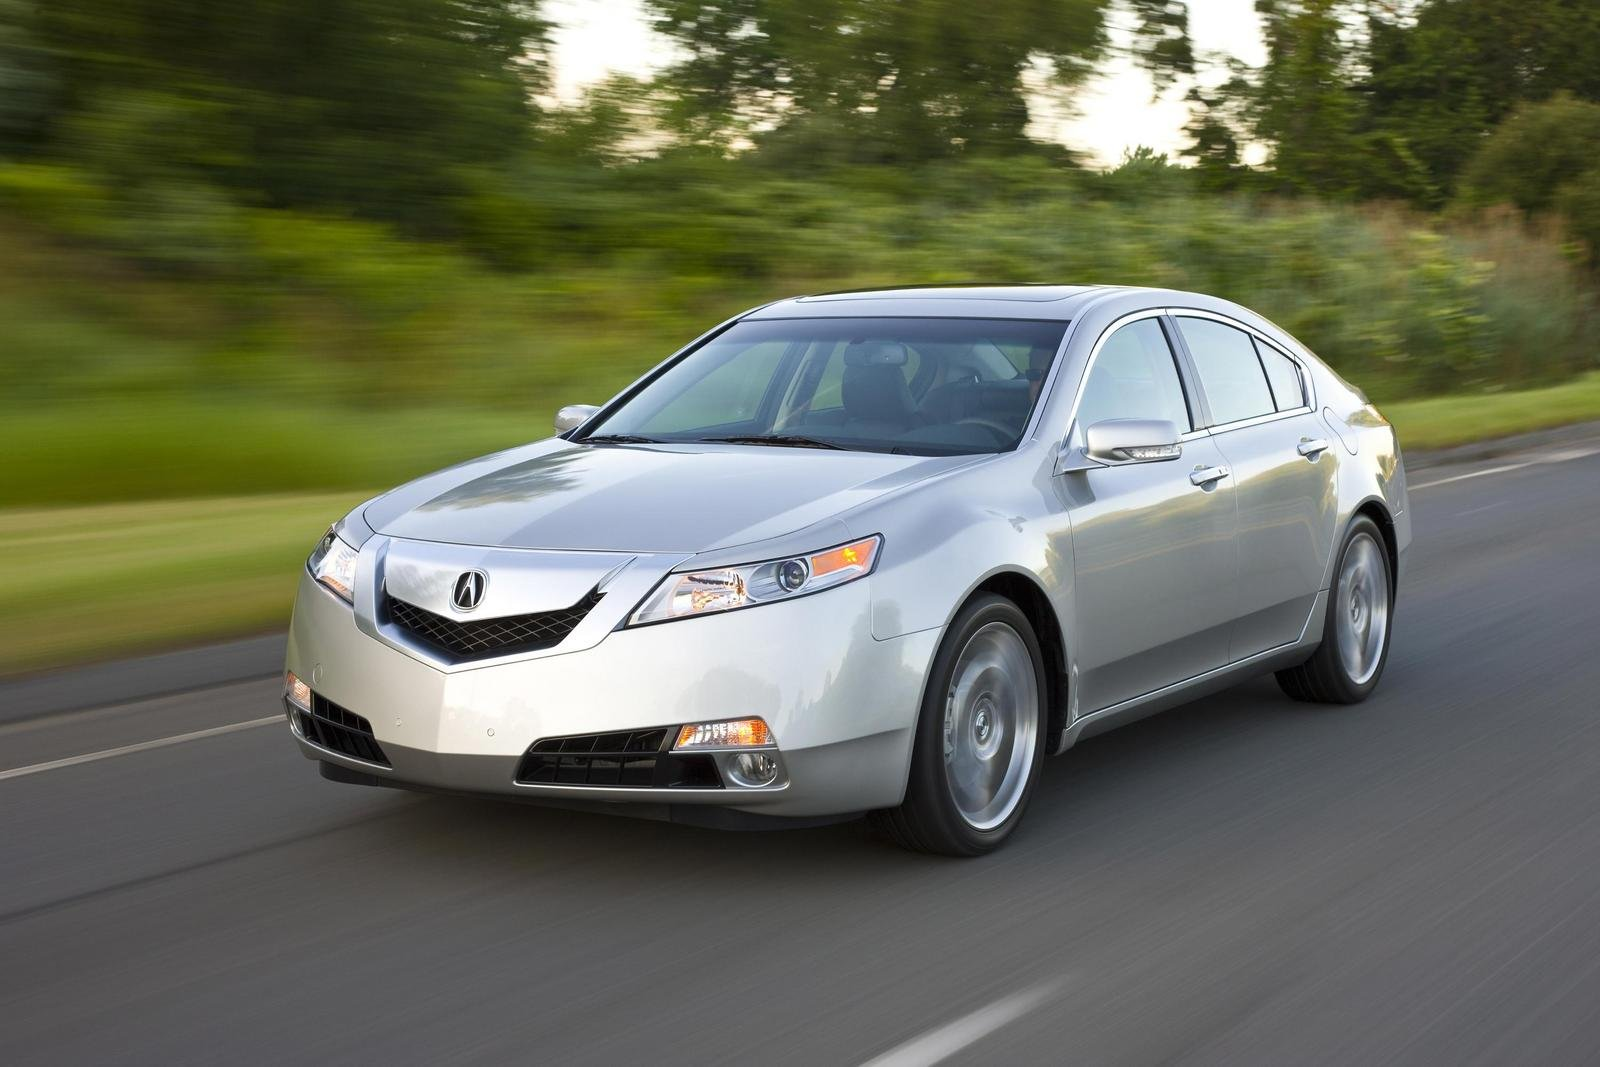 2009 Acura TL Review - Top Speed